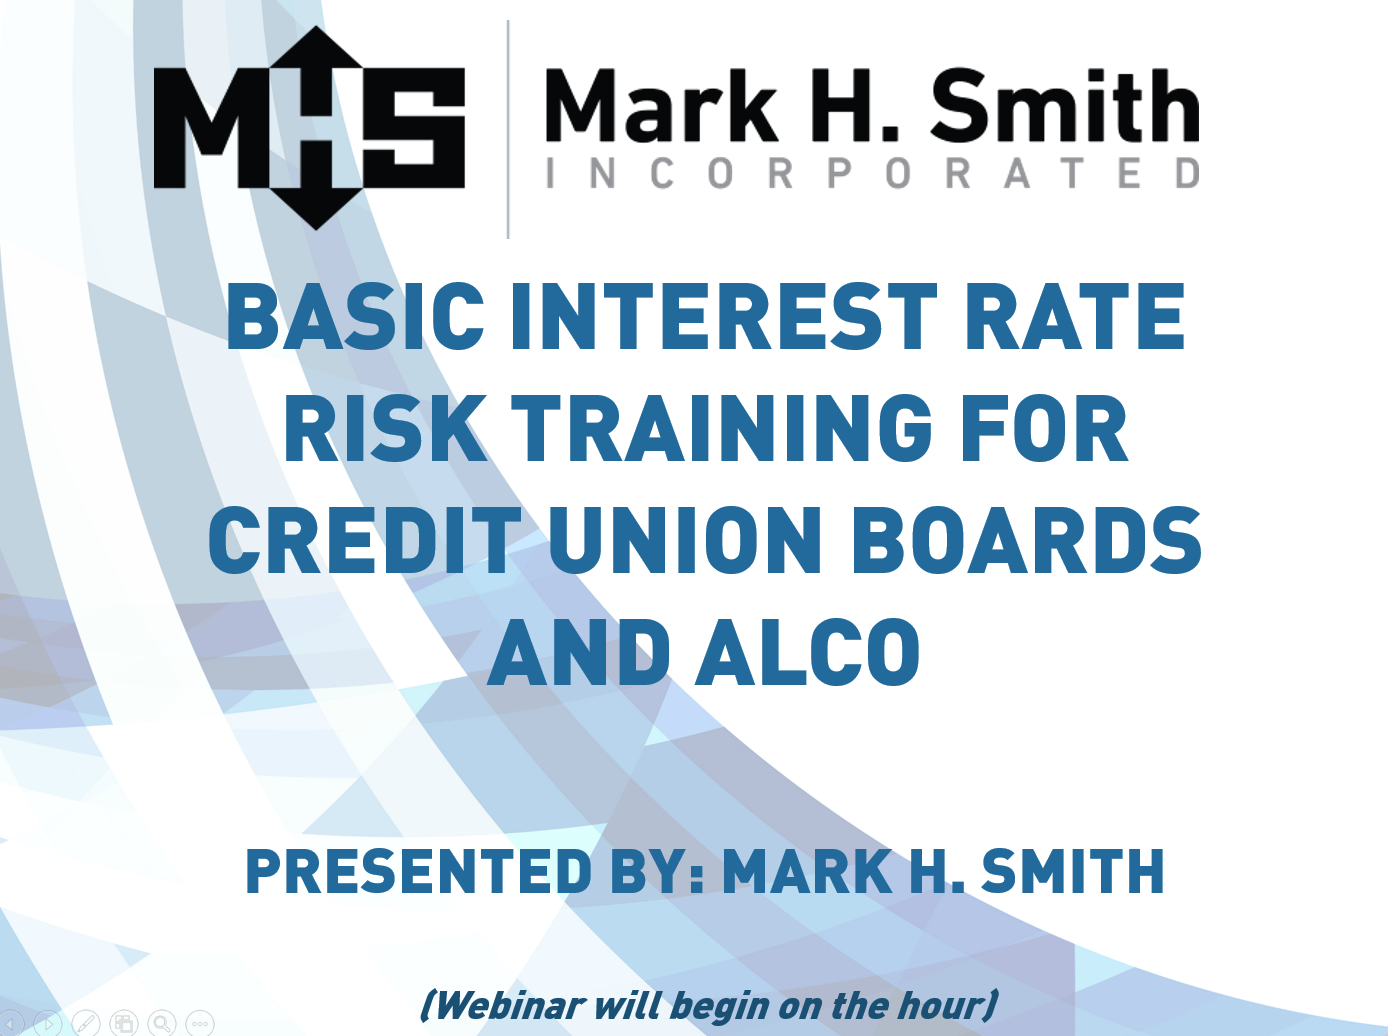 Basic Interest Rate Risk Training for Credit Union Boards and Alco 2 Webinar